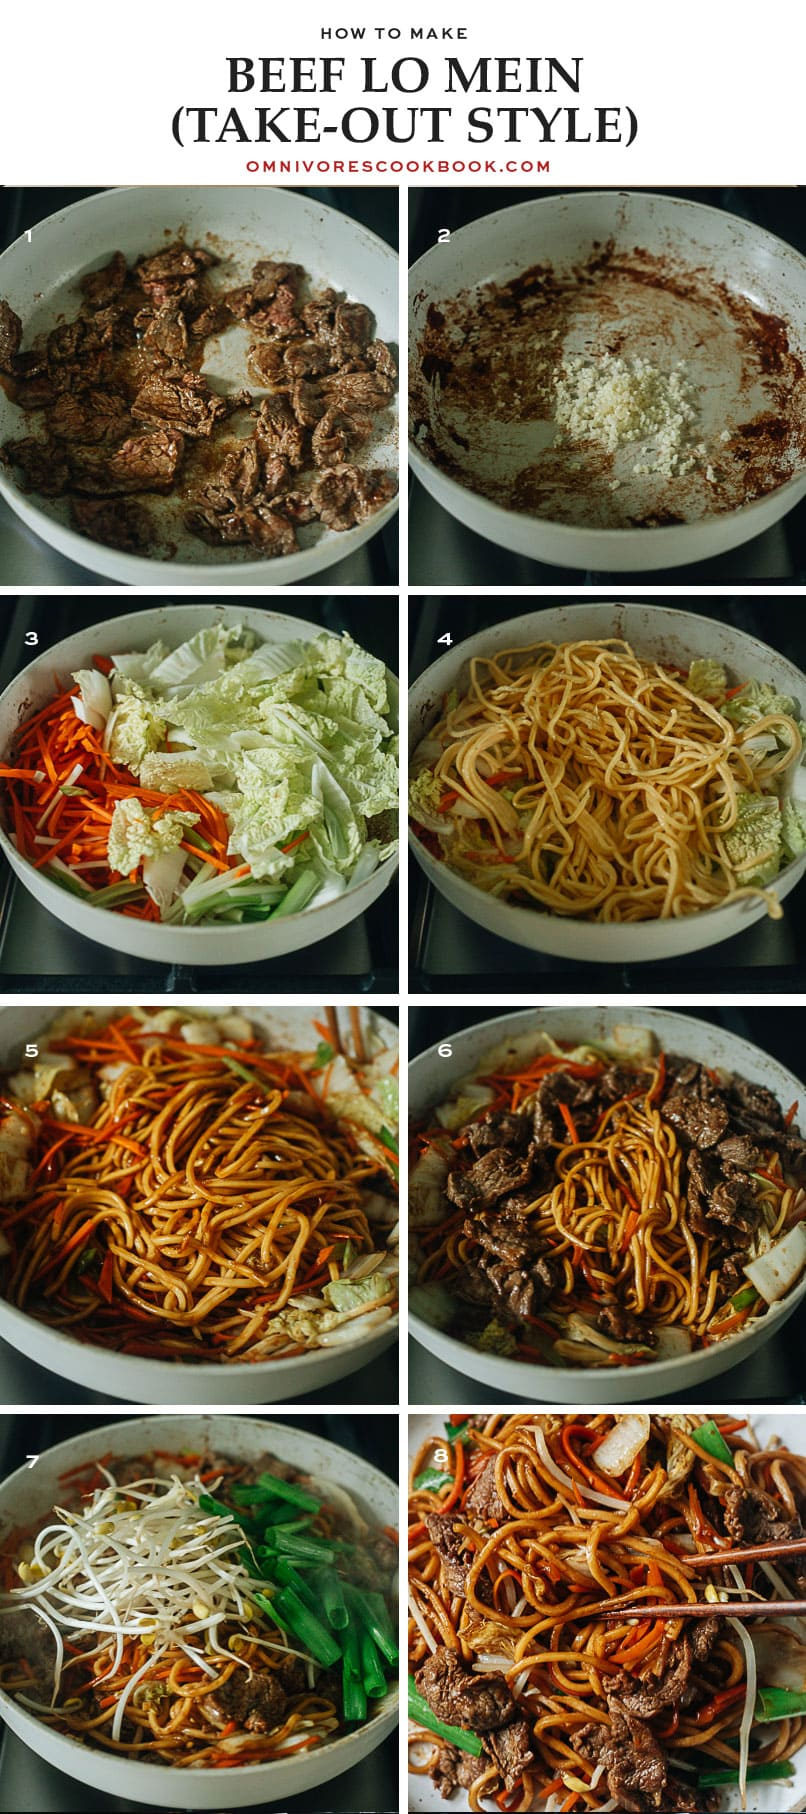 Step-by-step process of making quick beef lo mein